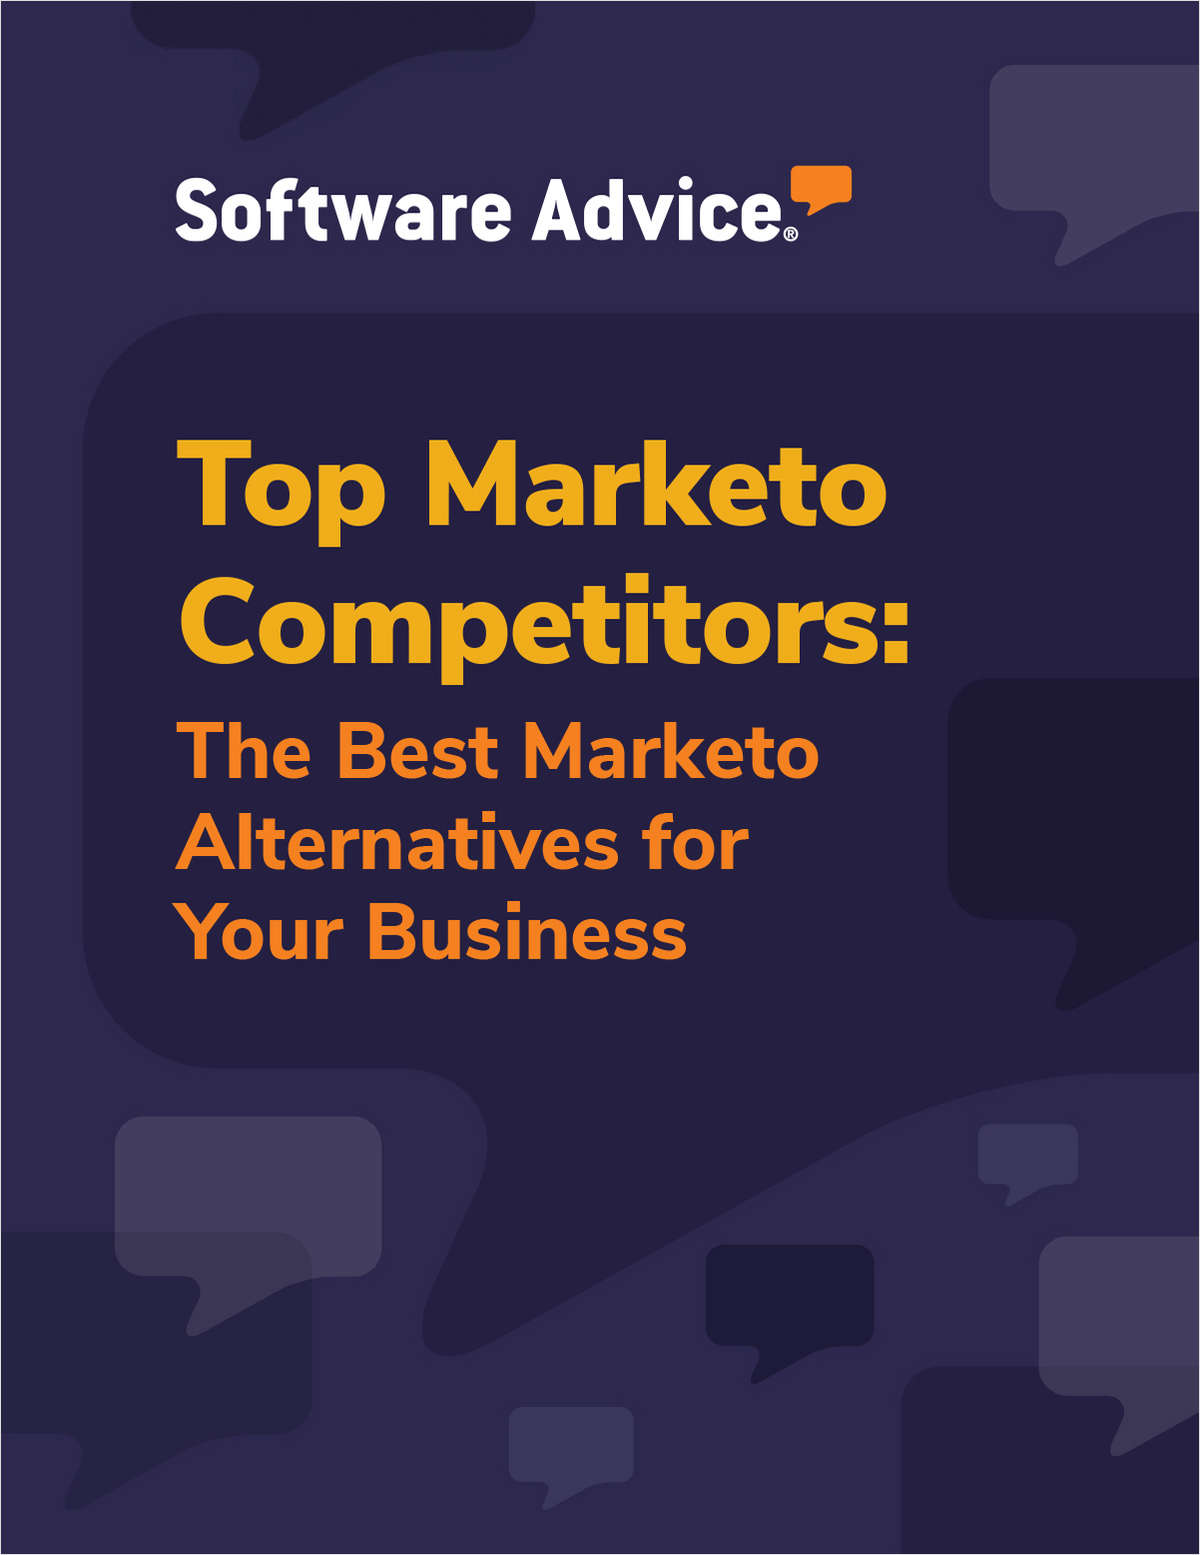 Discover How Top Marketing Systems Compare to Marketo